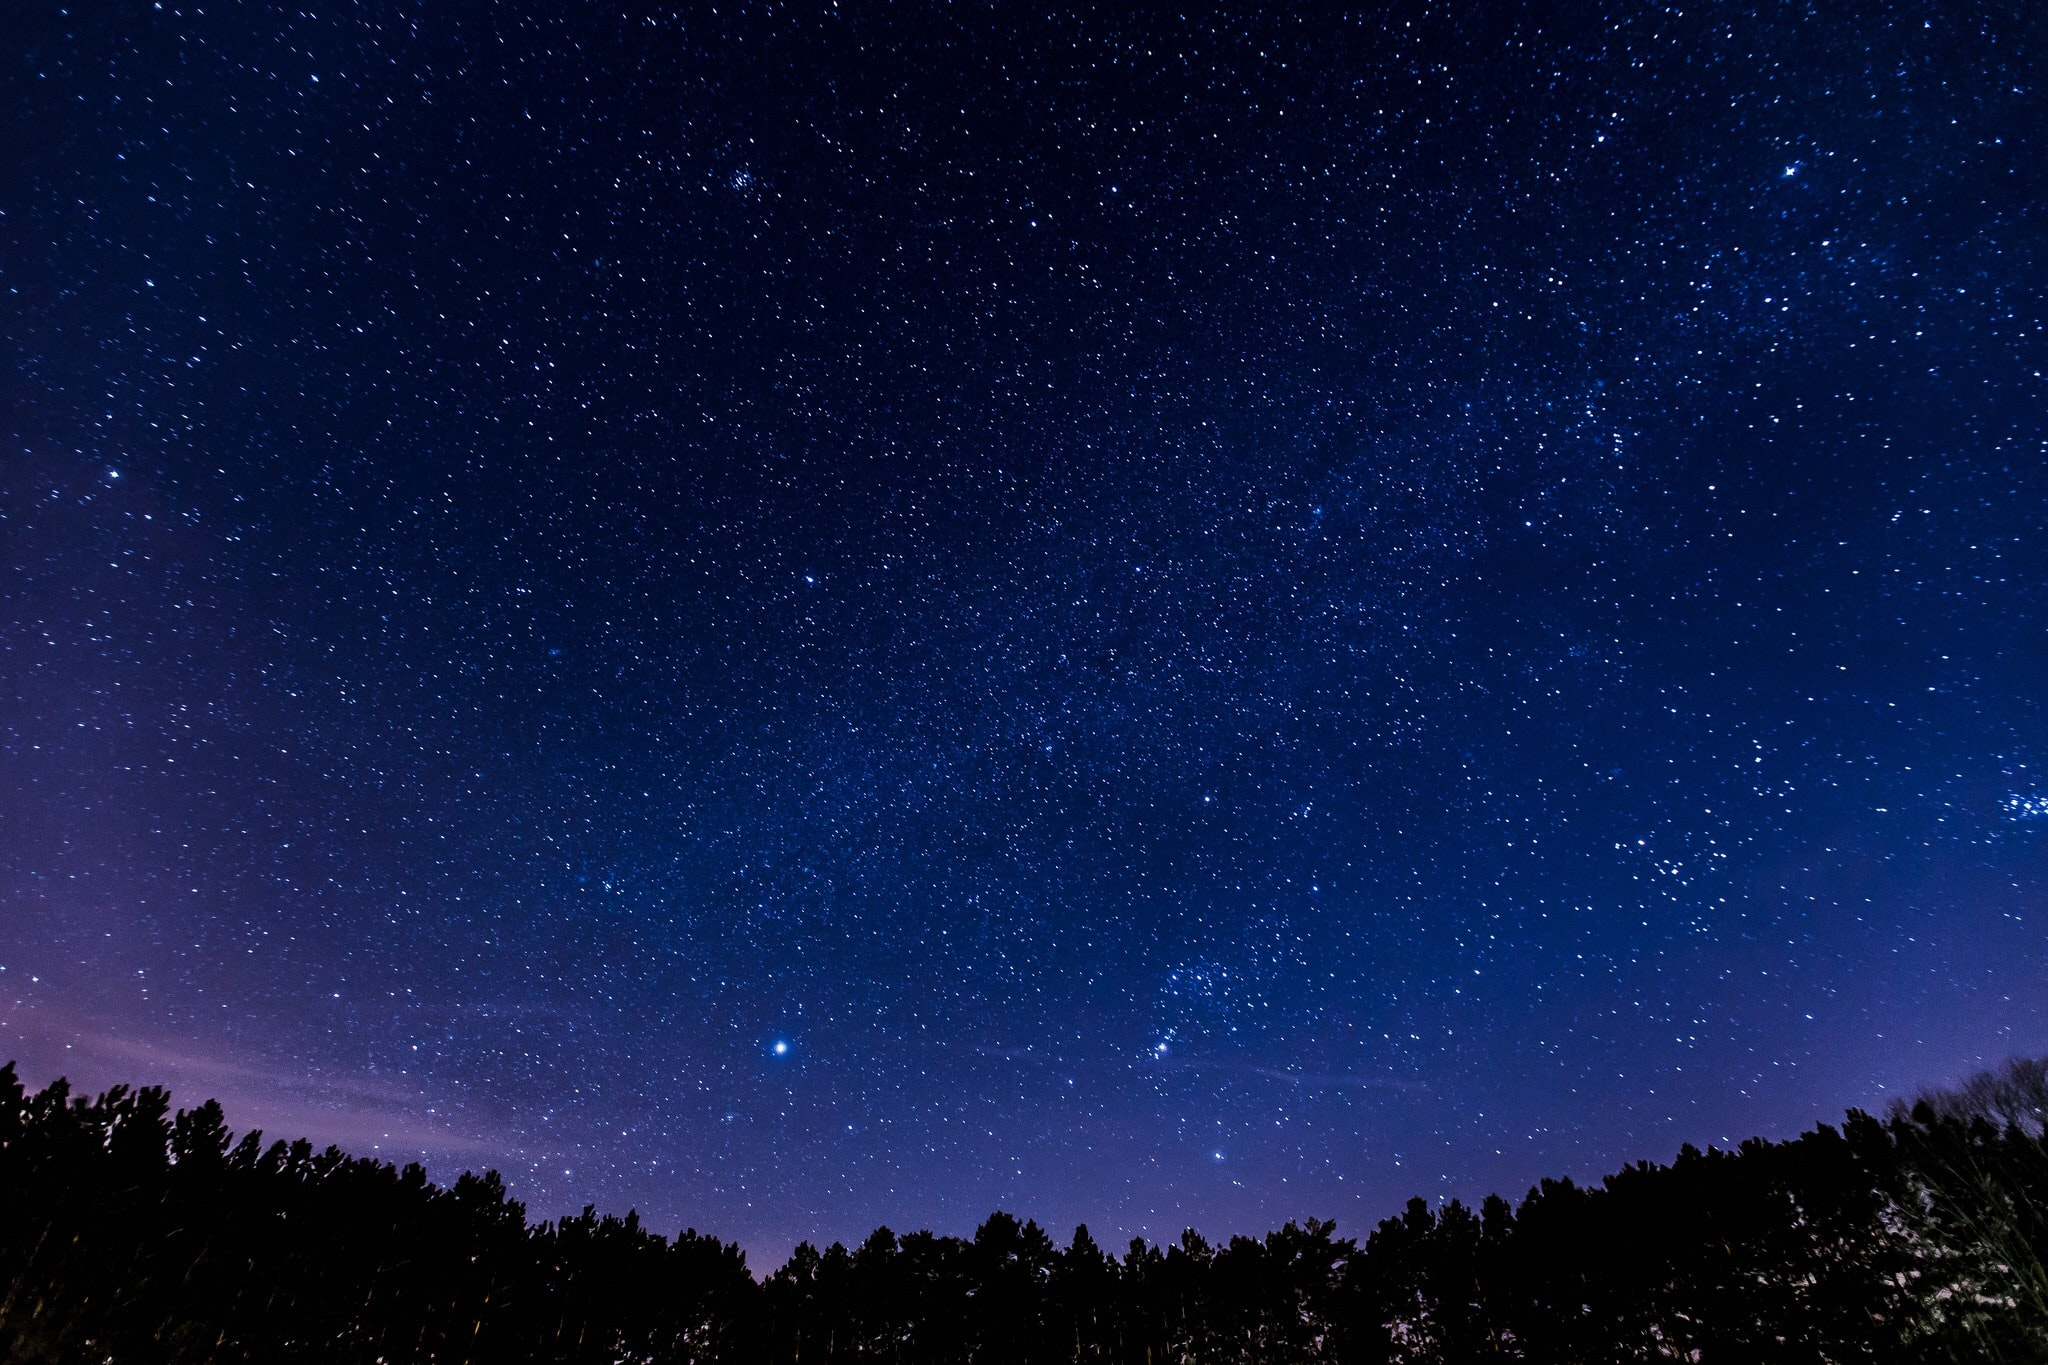 stars in the sky above silhouette of trees